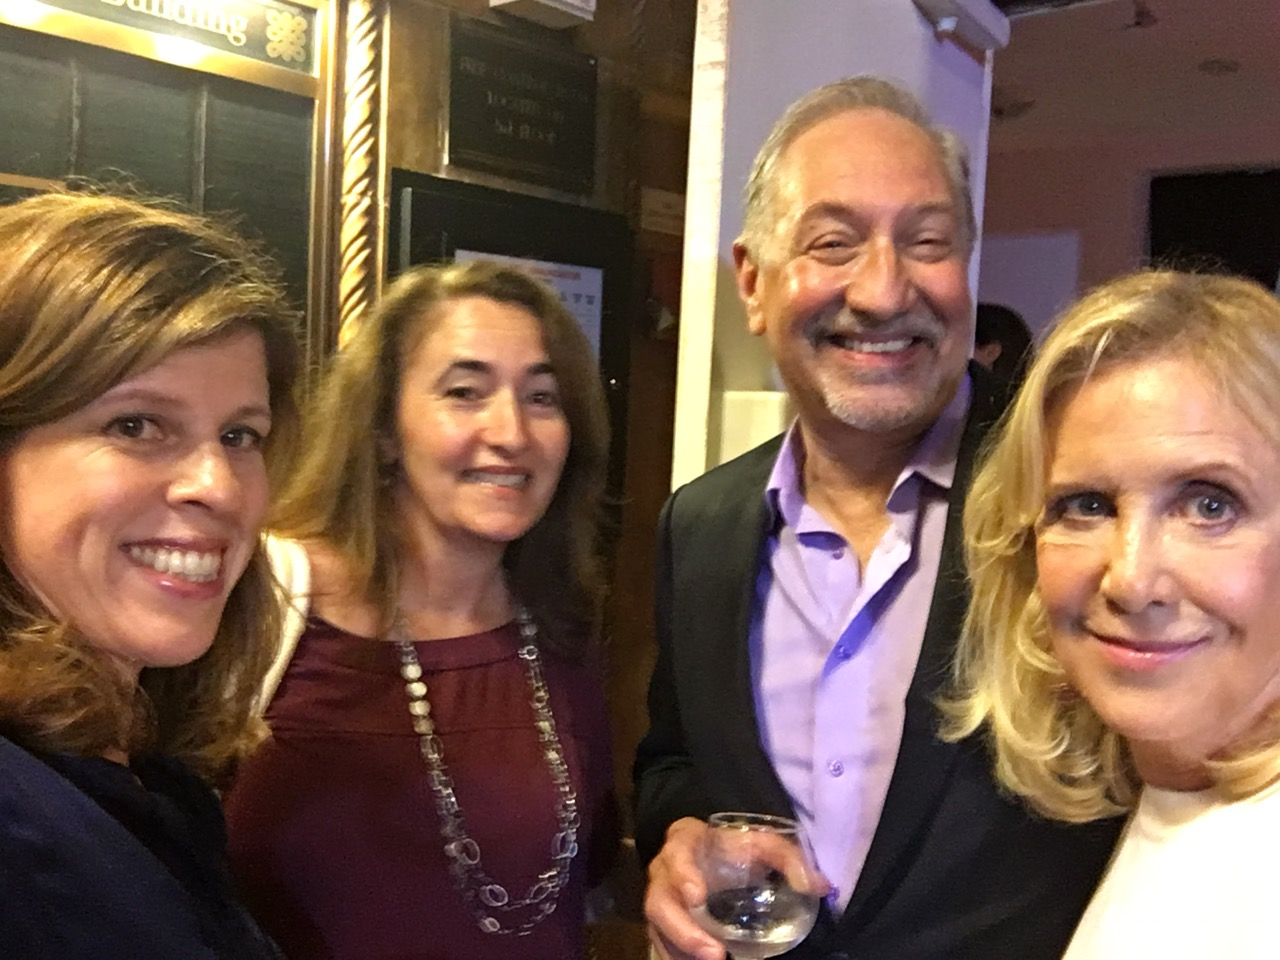 Yvonne Condes, Sarah Auerswald, Mark Geragos and Wendy Walker at premiere party for Notorious on NBC